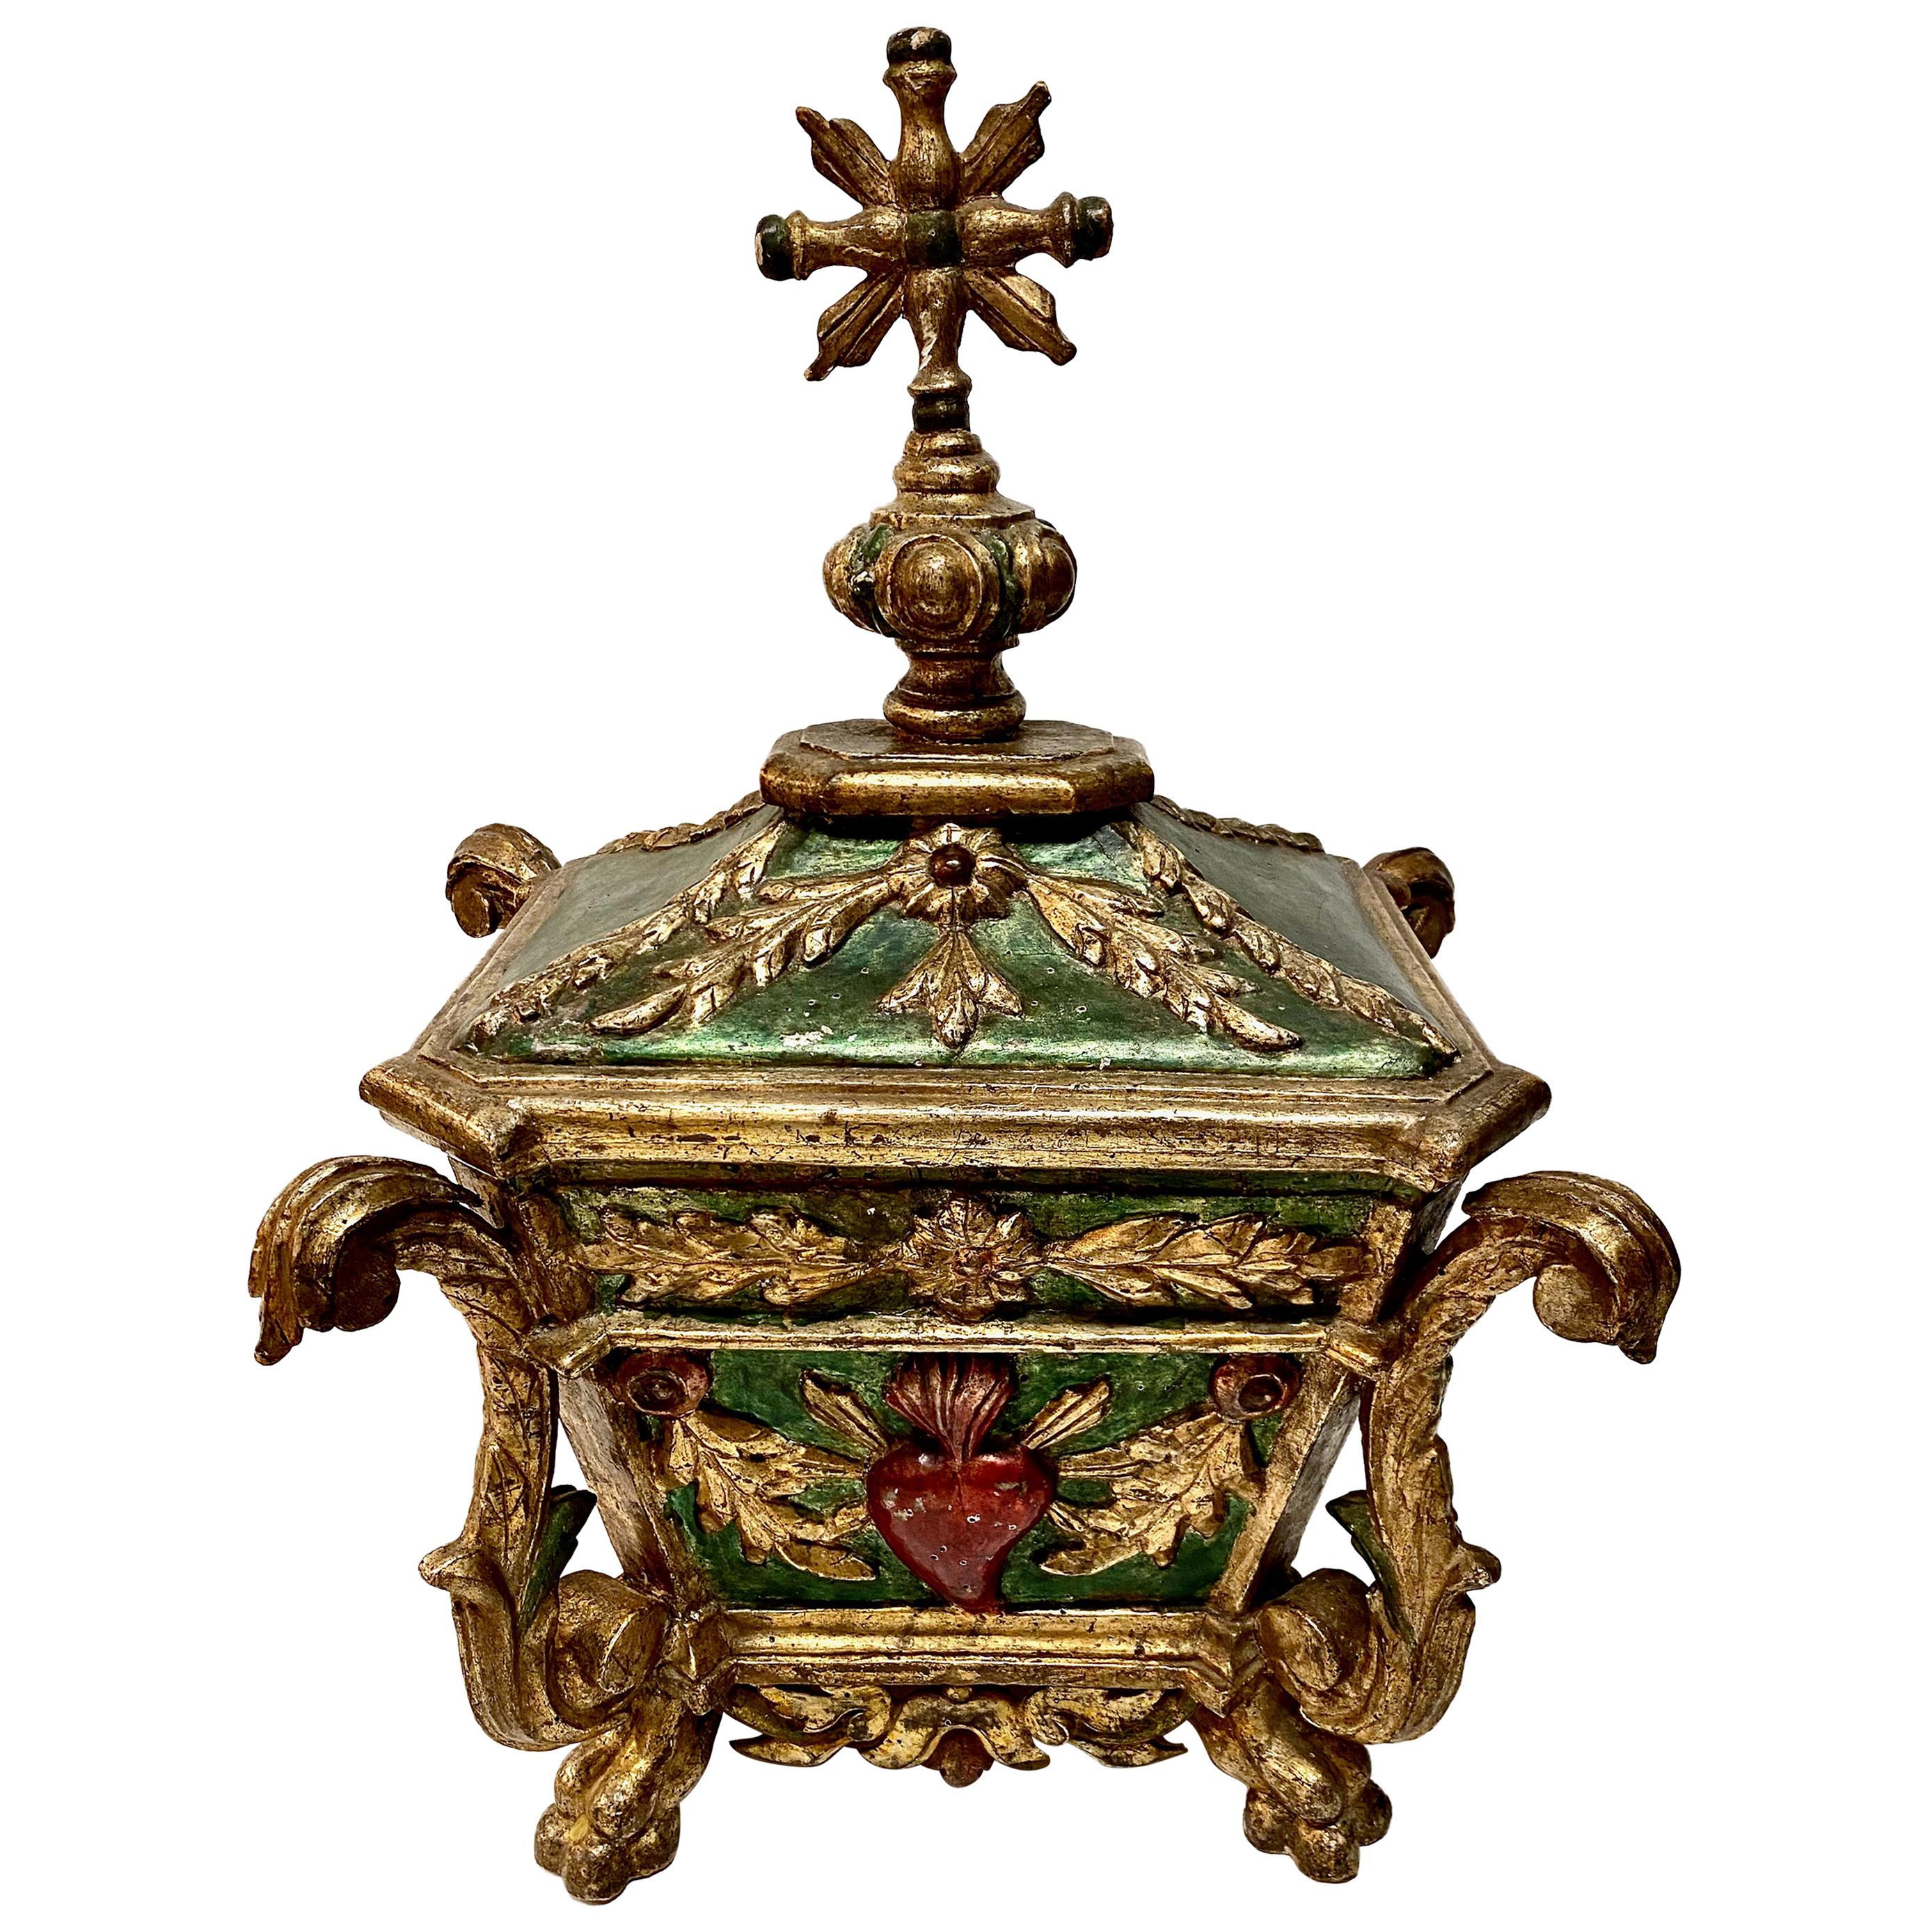 Spanish Colonial Gilt Wood Reliquary or Table Box